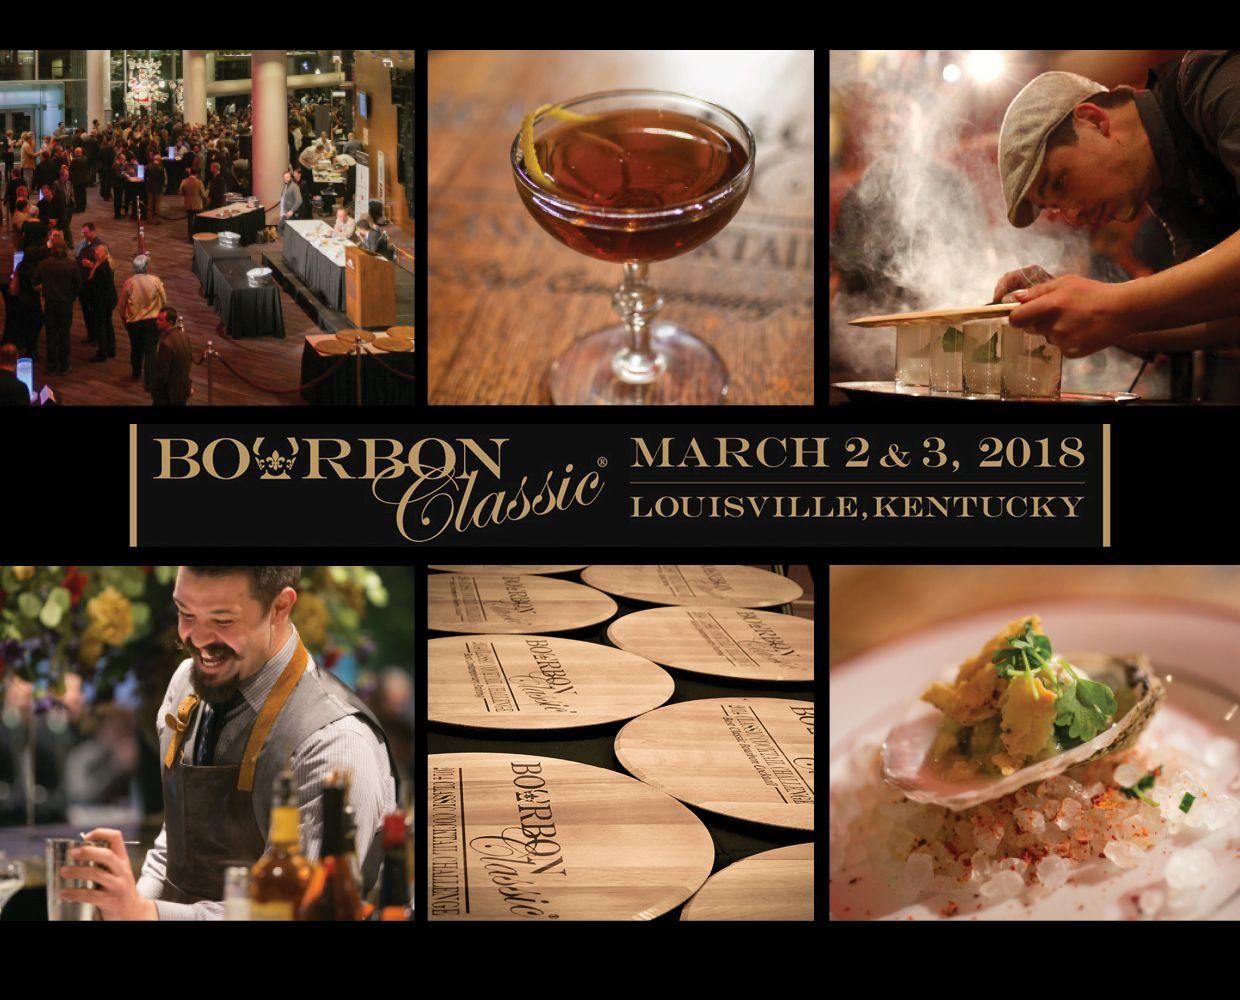 March 2 & 3 - The Bourbon Classic image